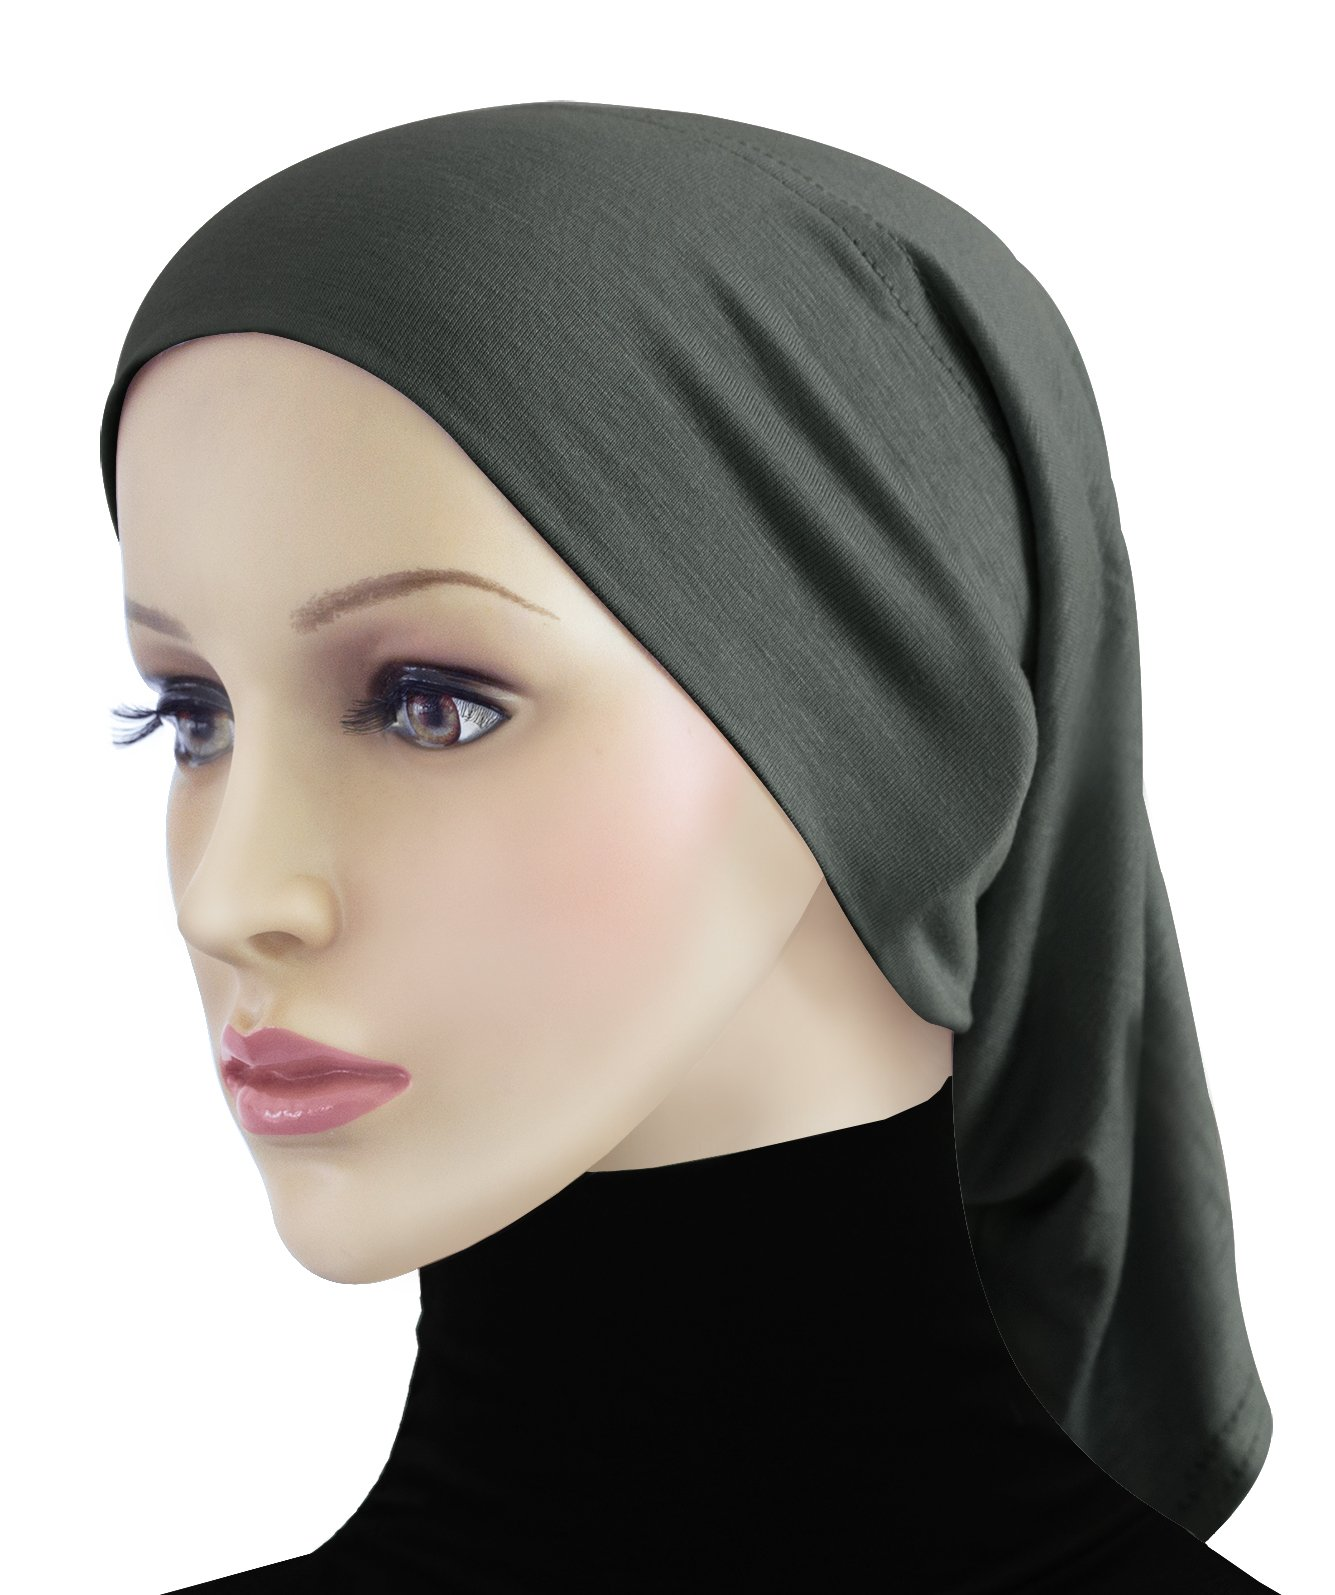 Cotton Hijab 2 piece Amira Set Easy Instant Pull-On Hood & Tube Cap (Charcoal Gray) by Khatib Fashions (Image #2)